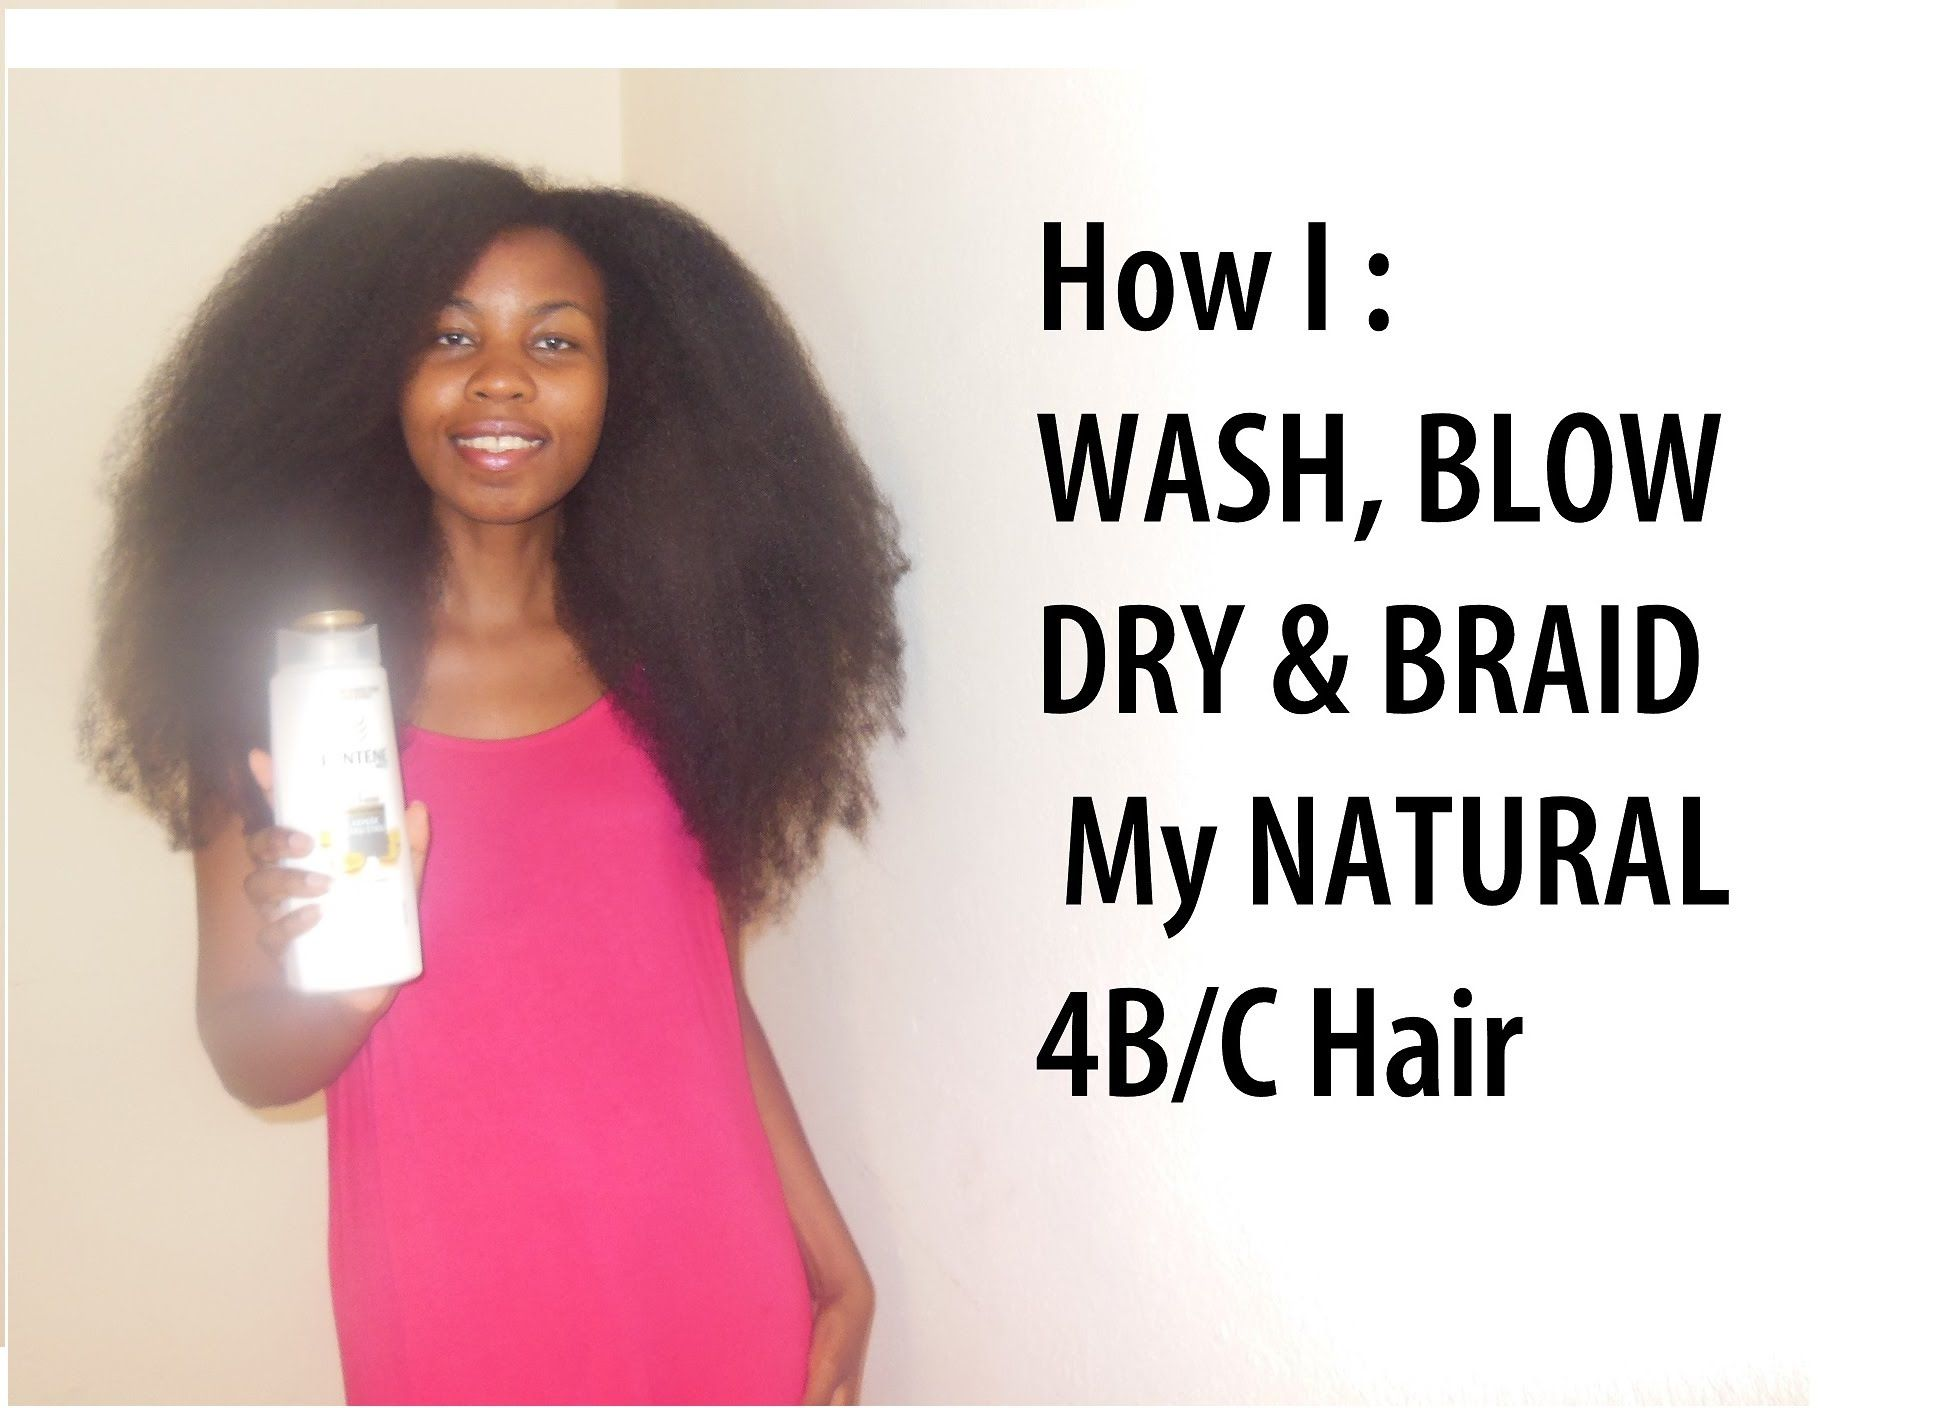 How I Wash Blow Dry And Braid My Natural 4b C Hair Routine Grow Lo Natural Hair Styles Blow Dry Natural Hair 4c Hairstyles